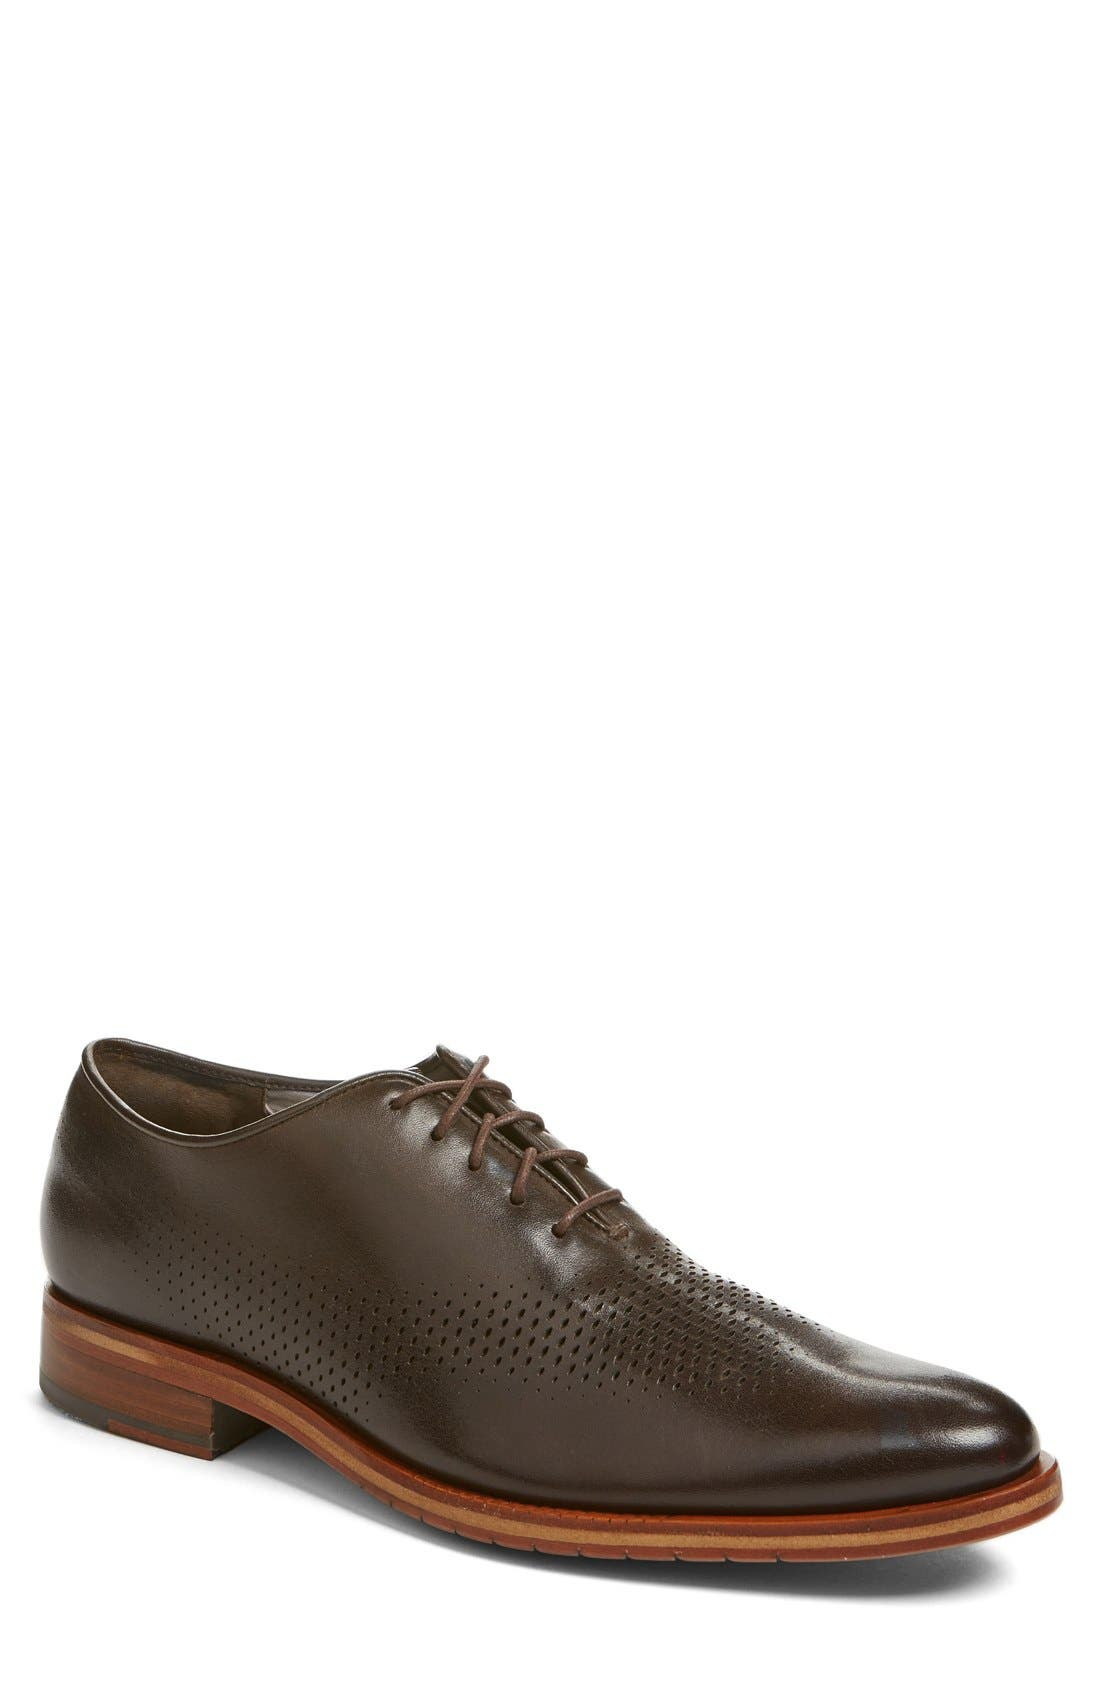 Alternate Image 1 Selected - Cole Haan 'Washington' Plain Toe Oxford (Men)